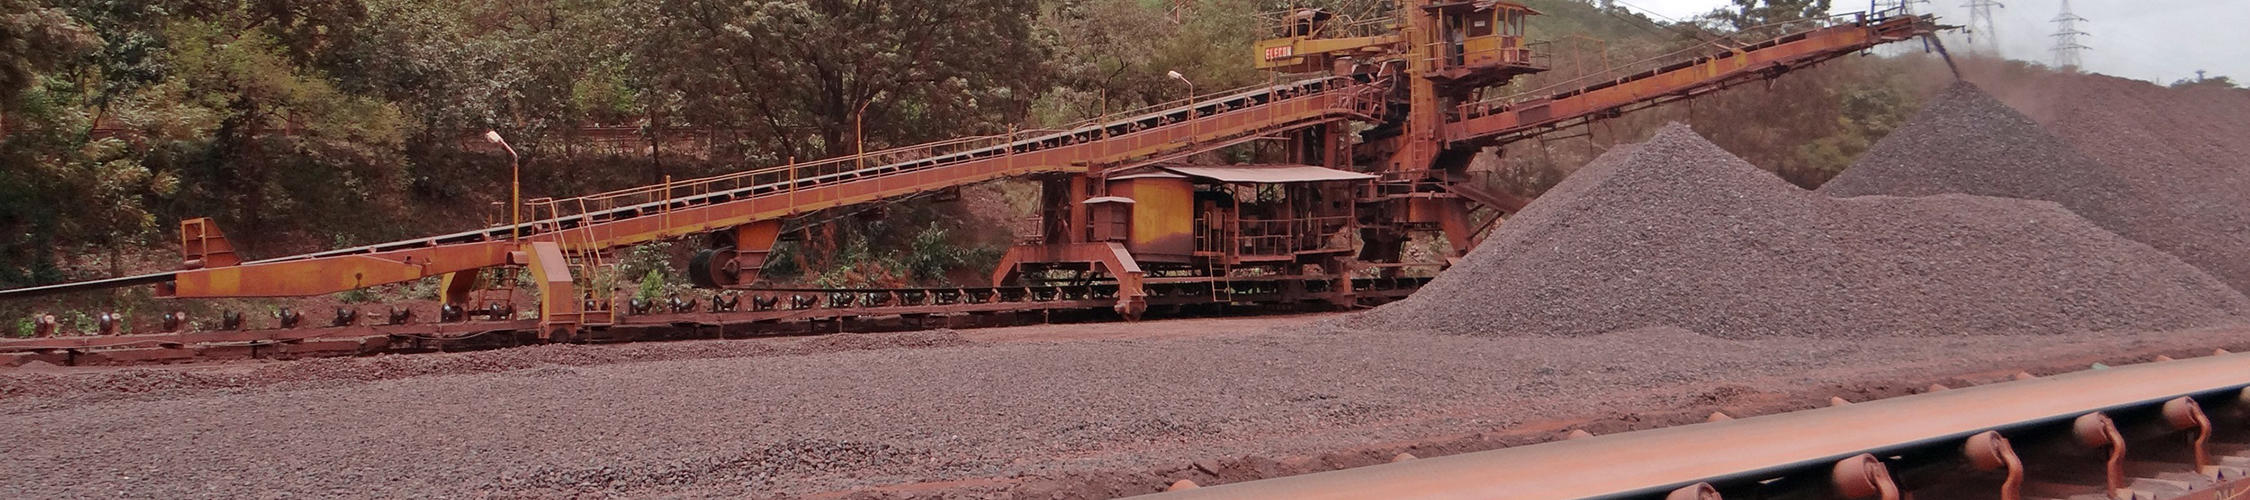 mining belt conveyors